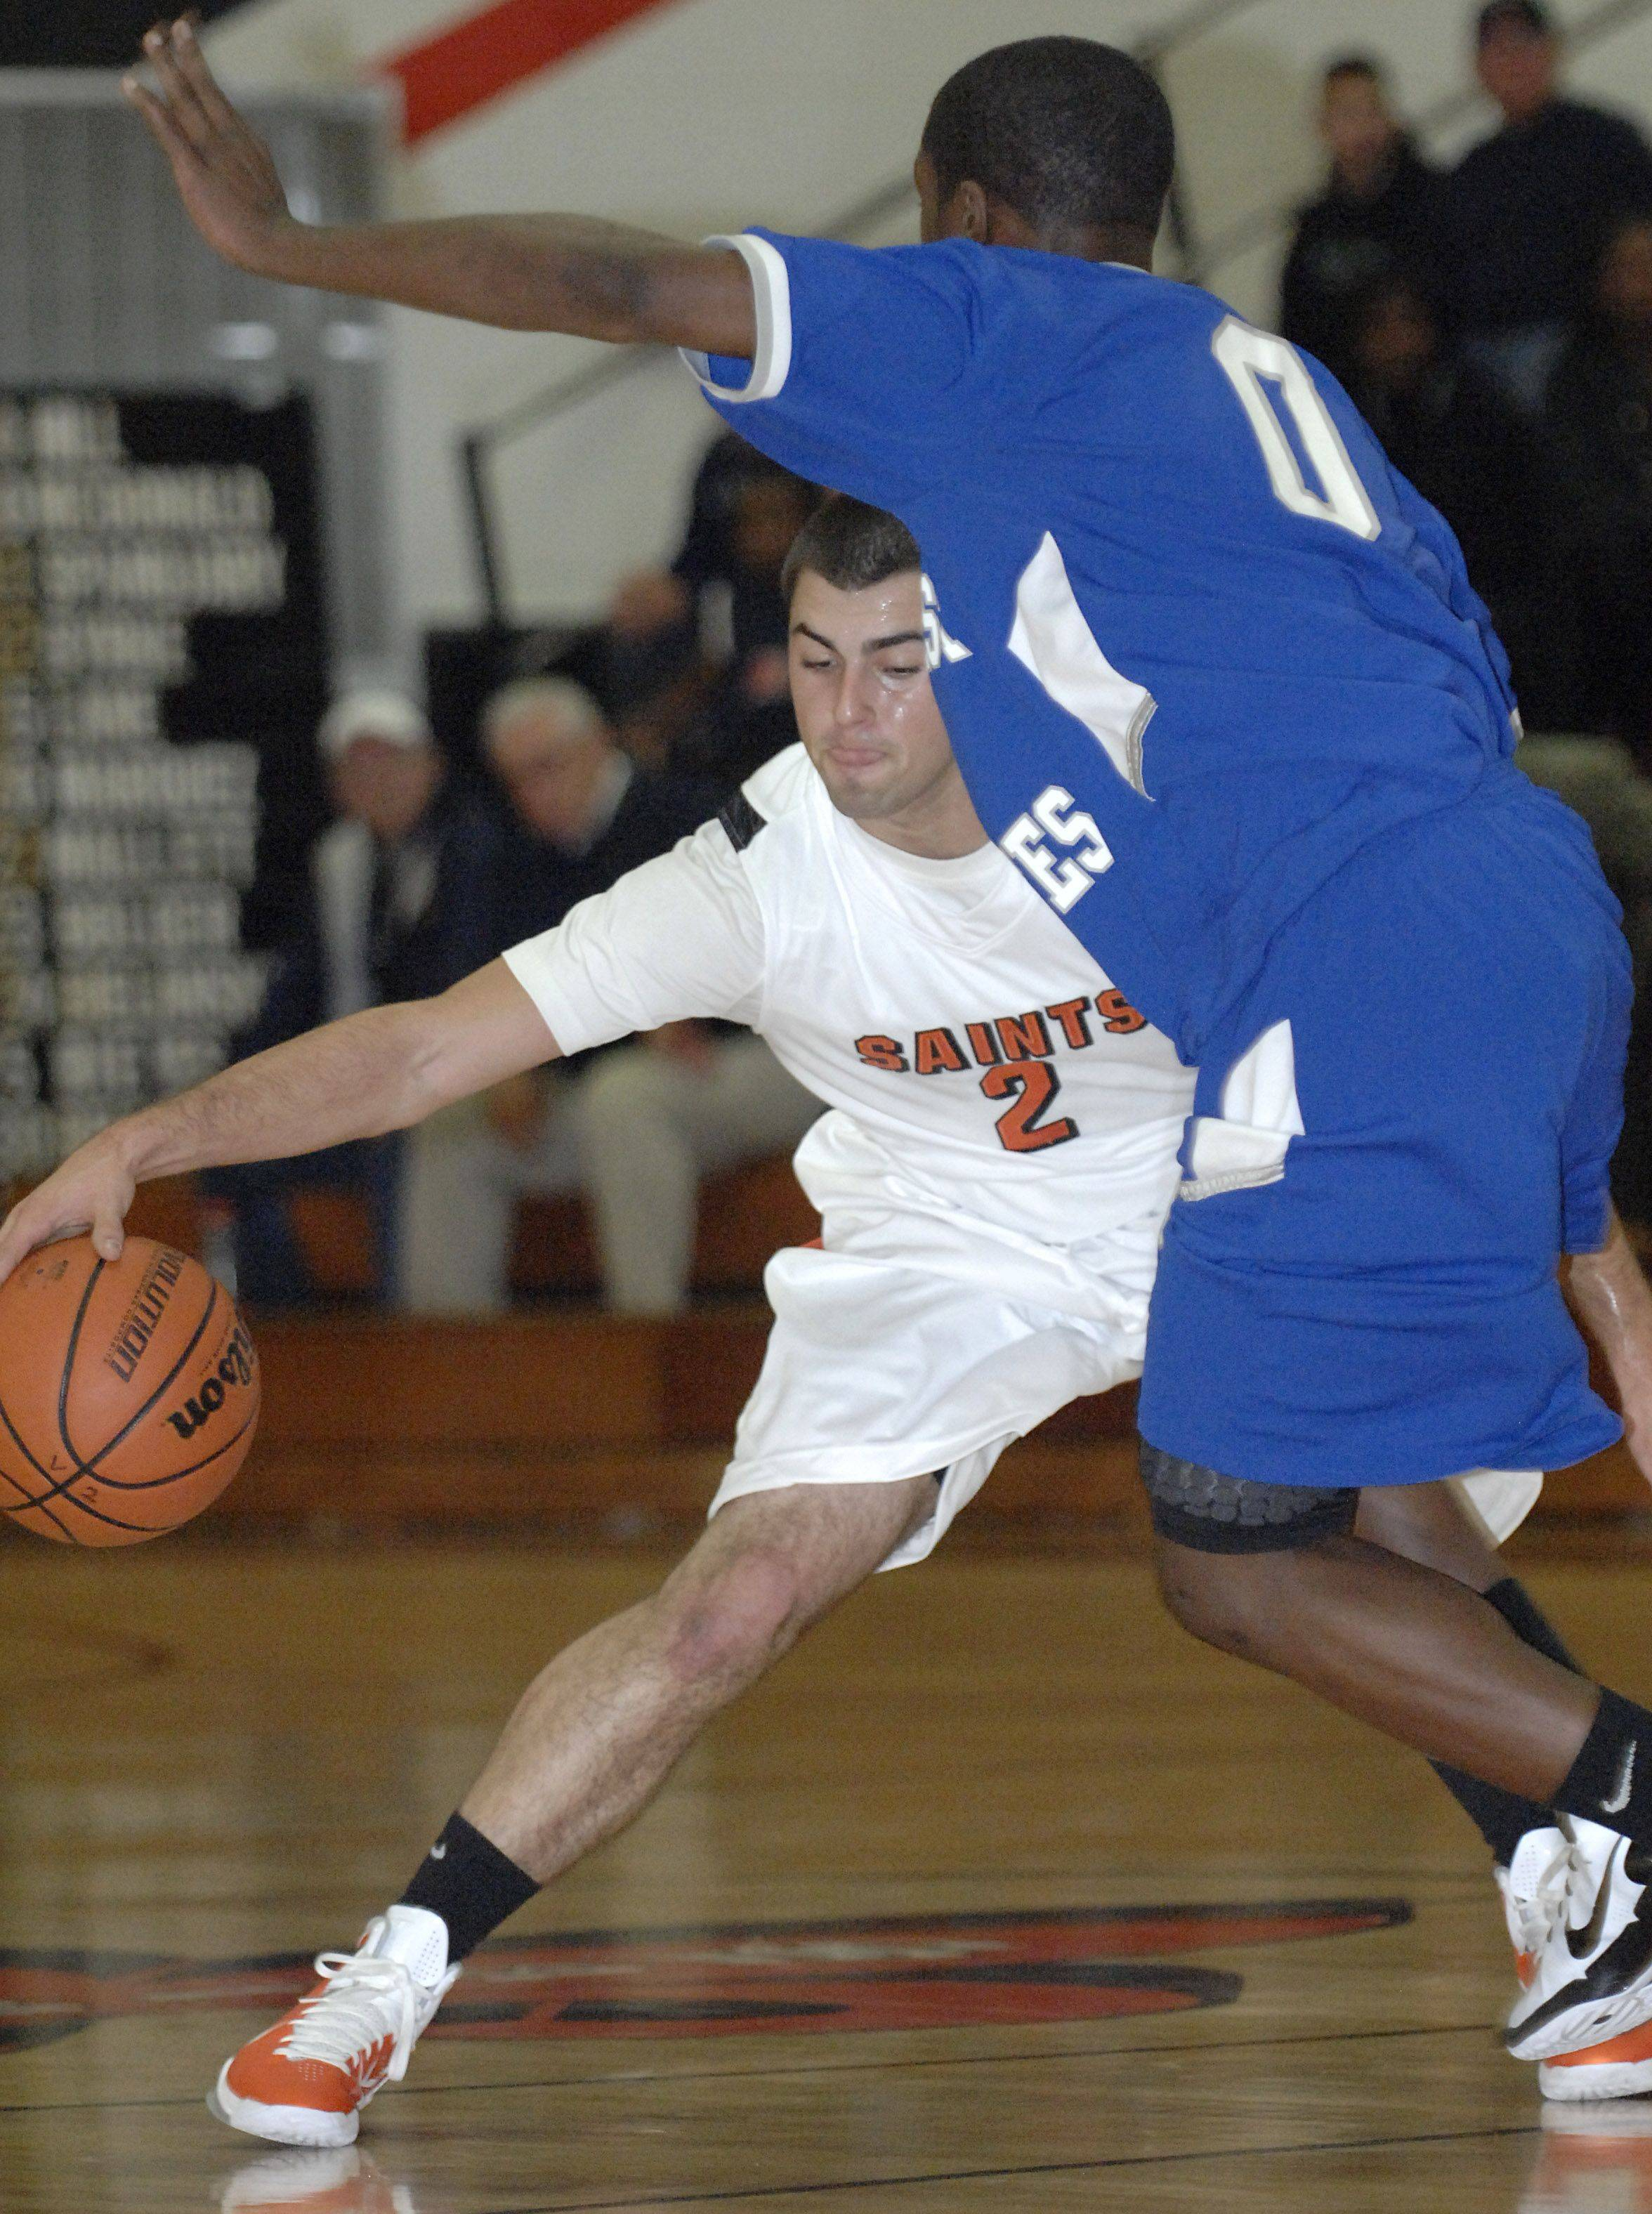 St. Charles East's Dan Ditusa attempts to dribble and pass around Proviso East's Keith Carter in the first quarter of tournament game on Tuesday, November 22.